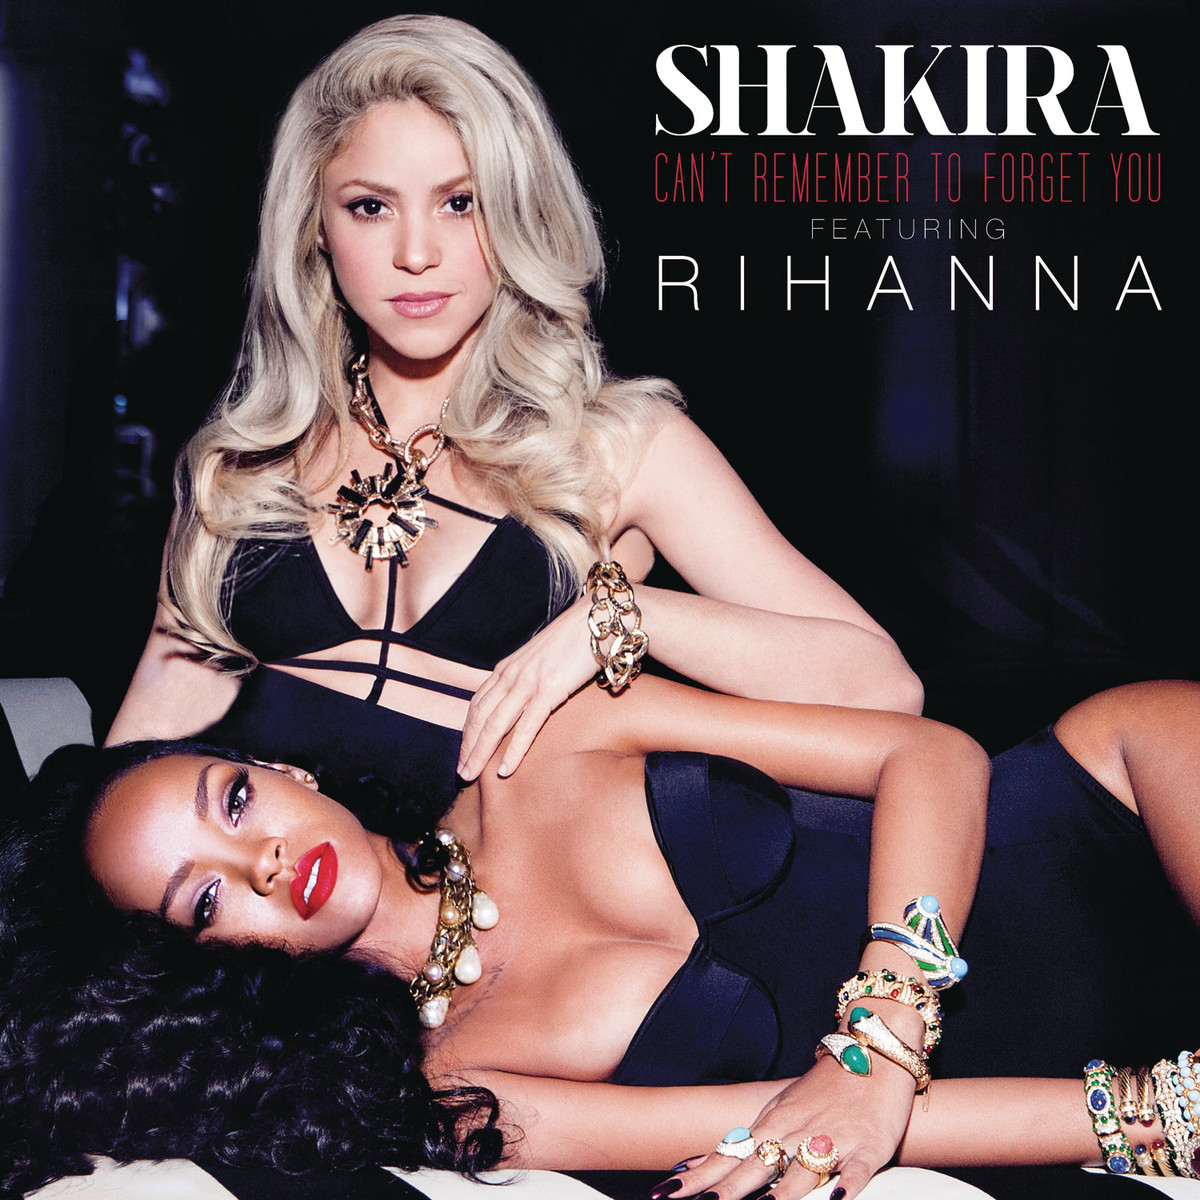 Shakira-Cant-Remember-to-Forget-You-feat.-Rihanna-2014-1200x1200